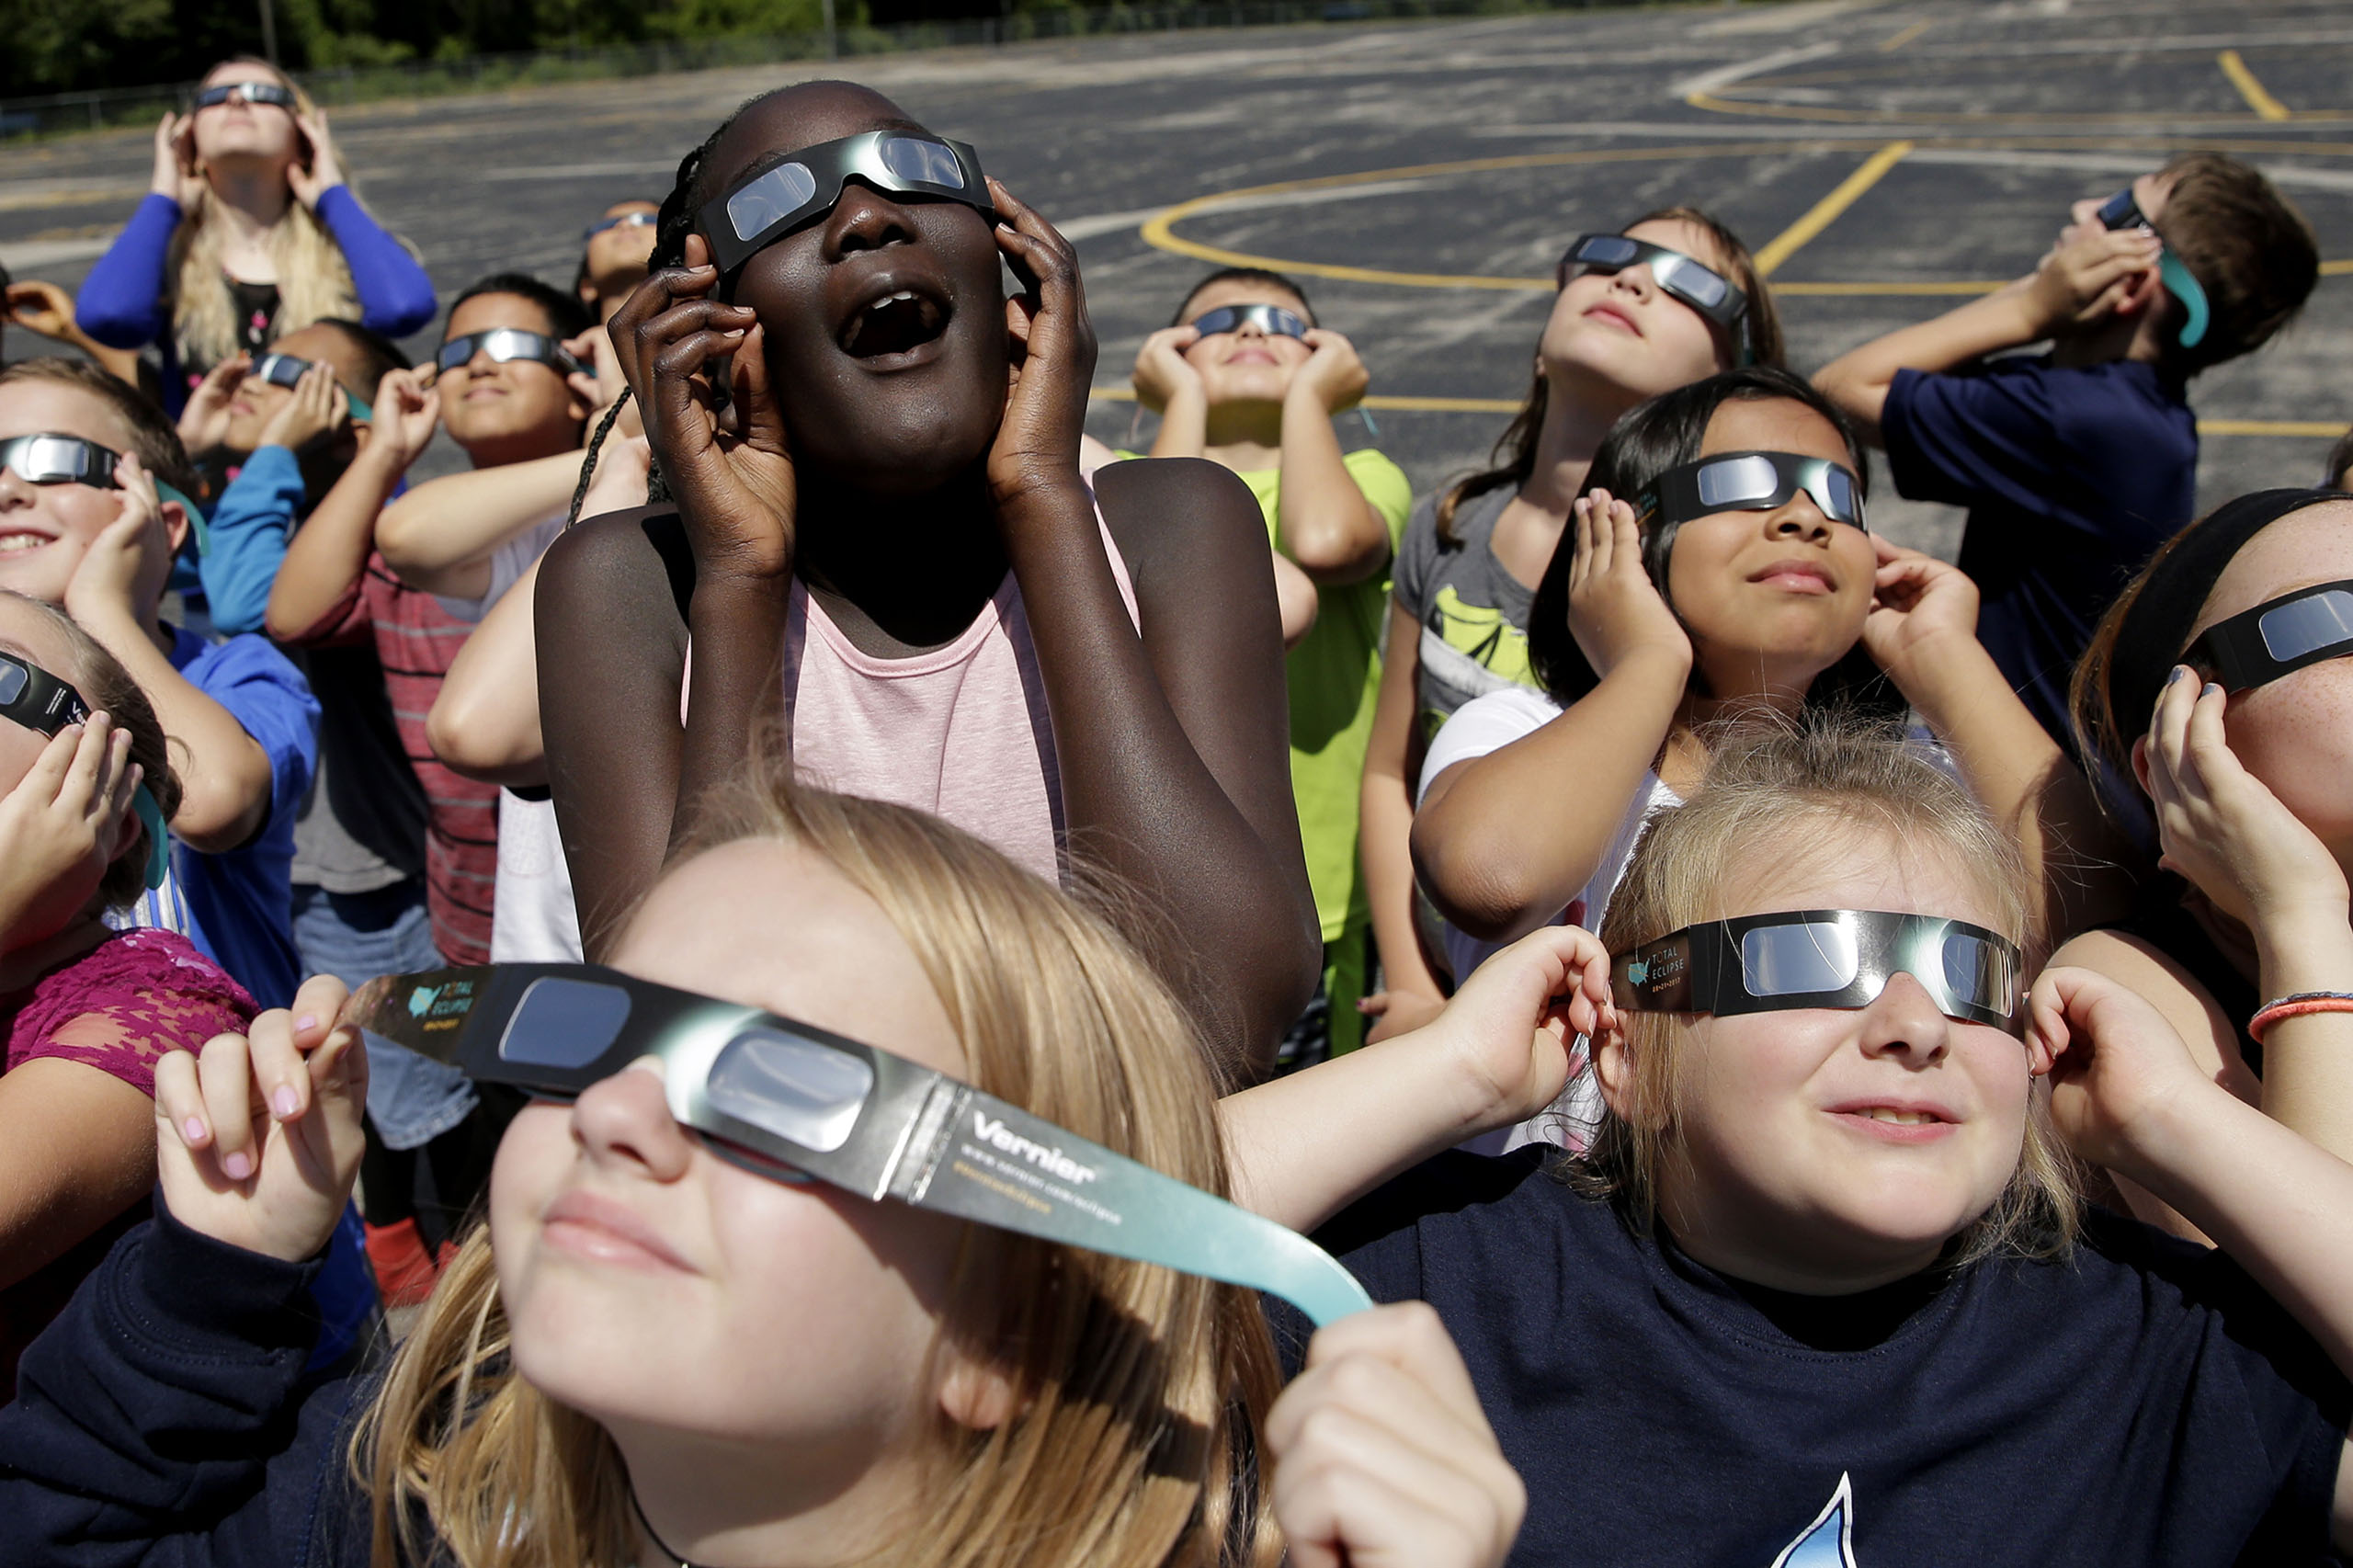 Fourth graders at Clardy Elementary School in Kansas City, Mo. practice the proper use of their eclipse glasses on Aug. 18, 2017 in anticipation of the solar eclipse.